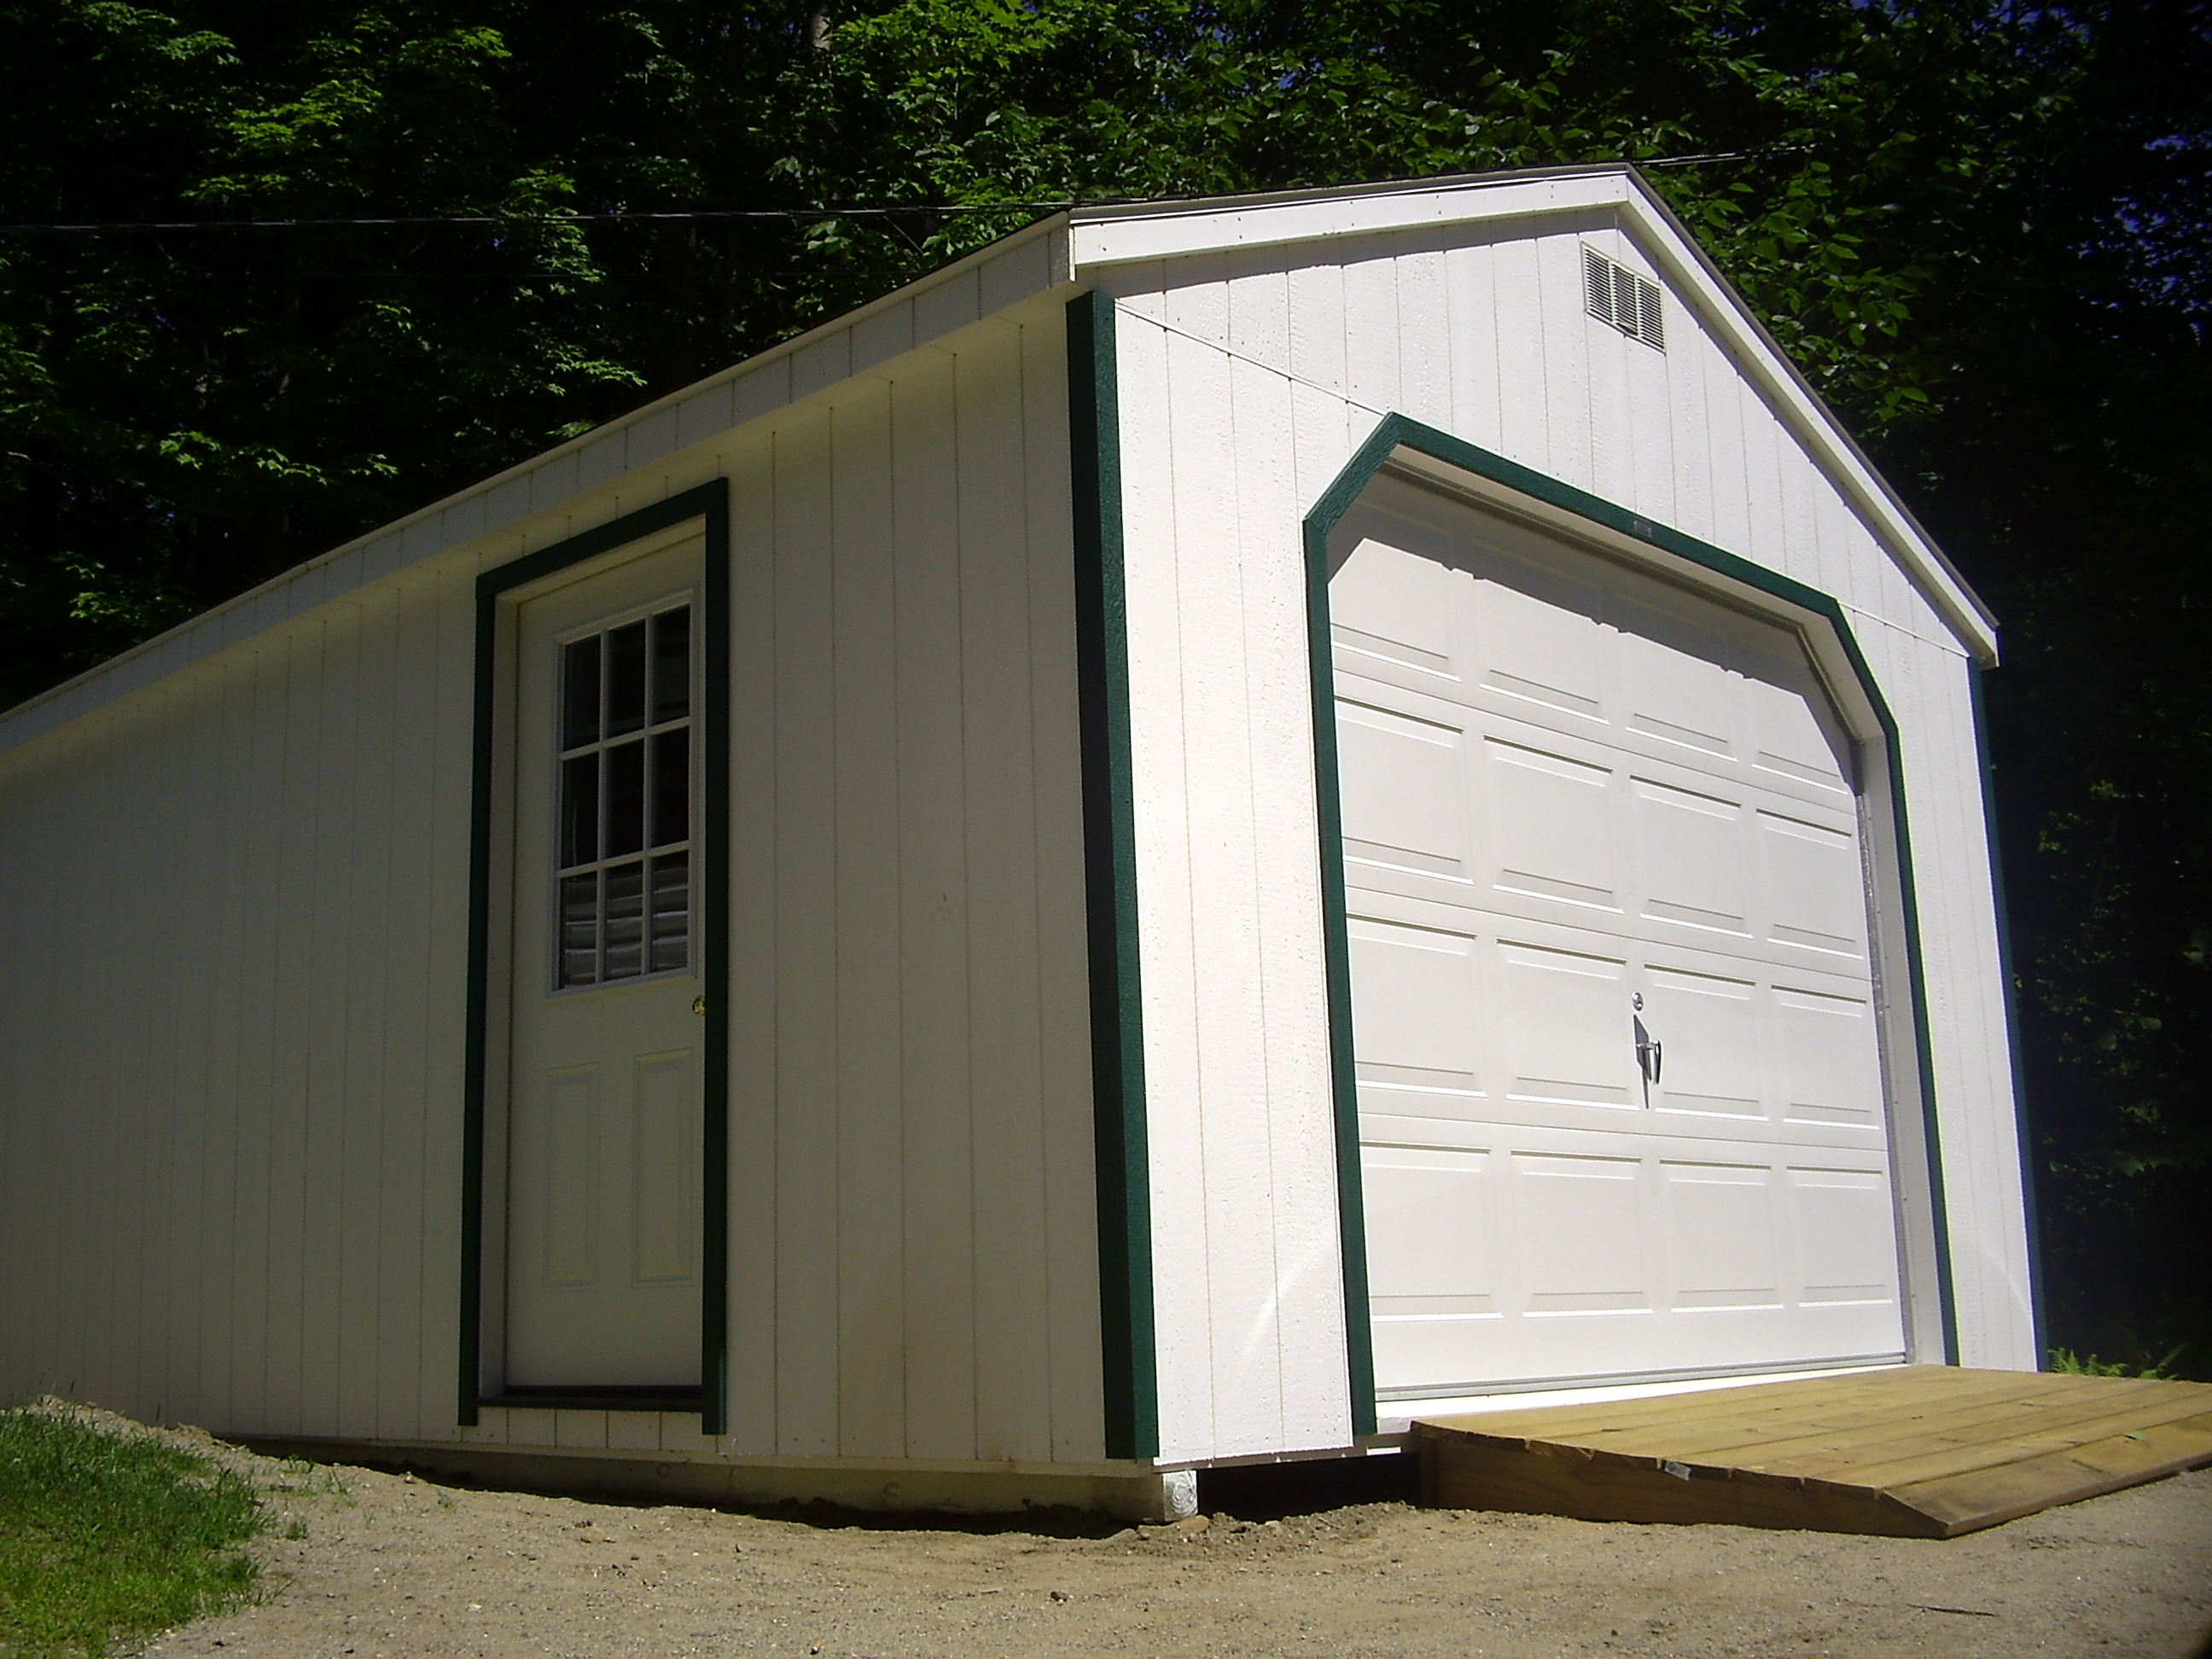 What Does Garage Mean: File:Car Garage -House Detached- July 4th 2008.JPG